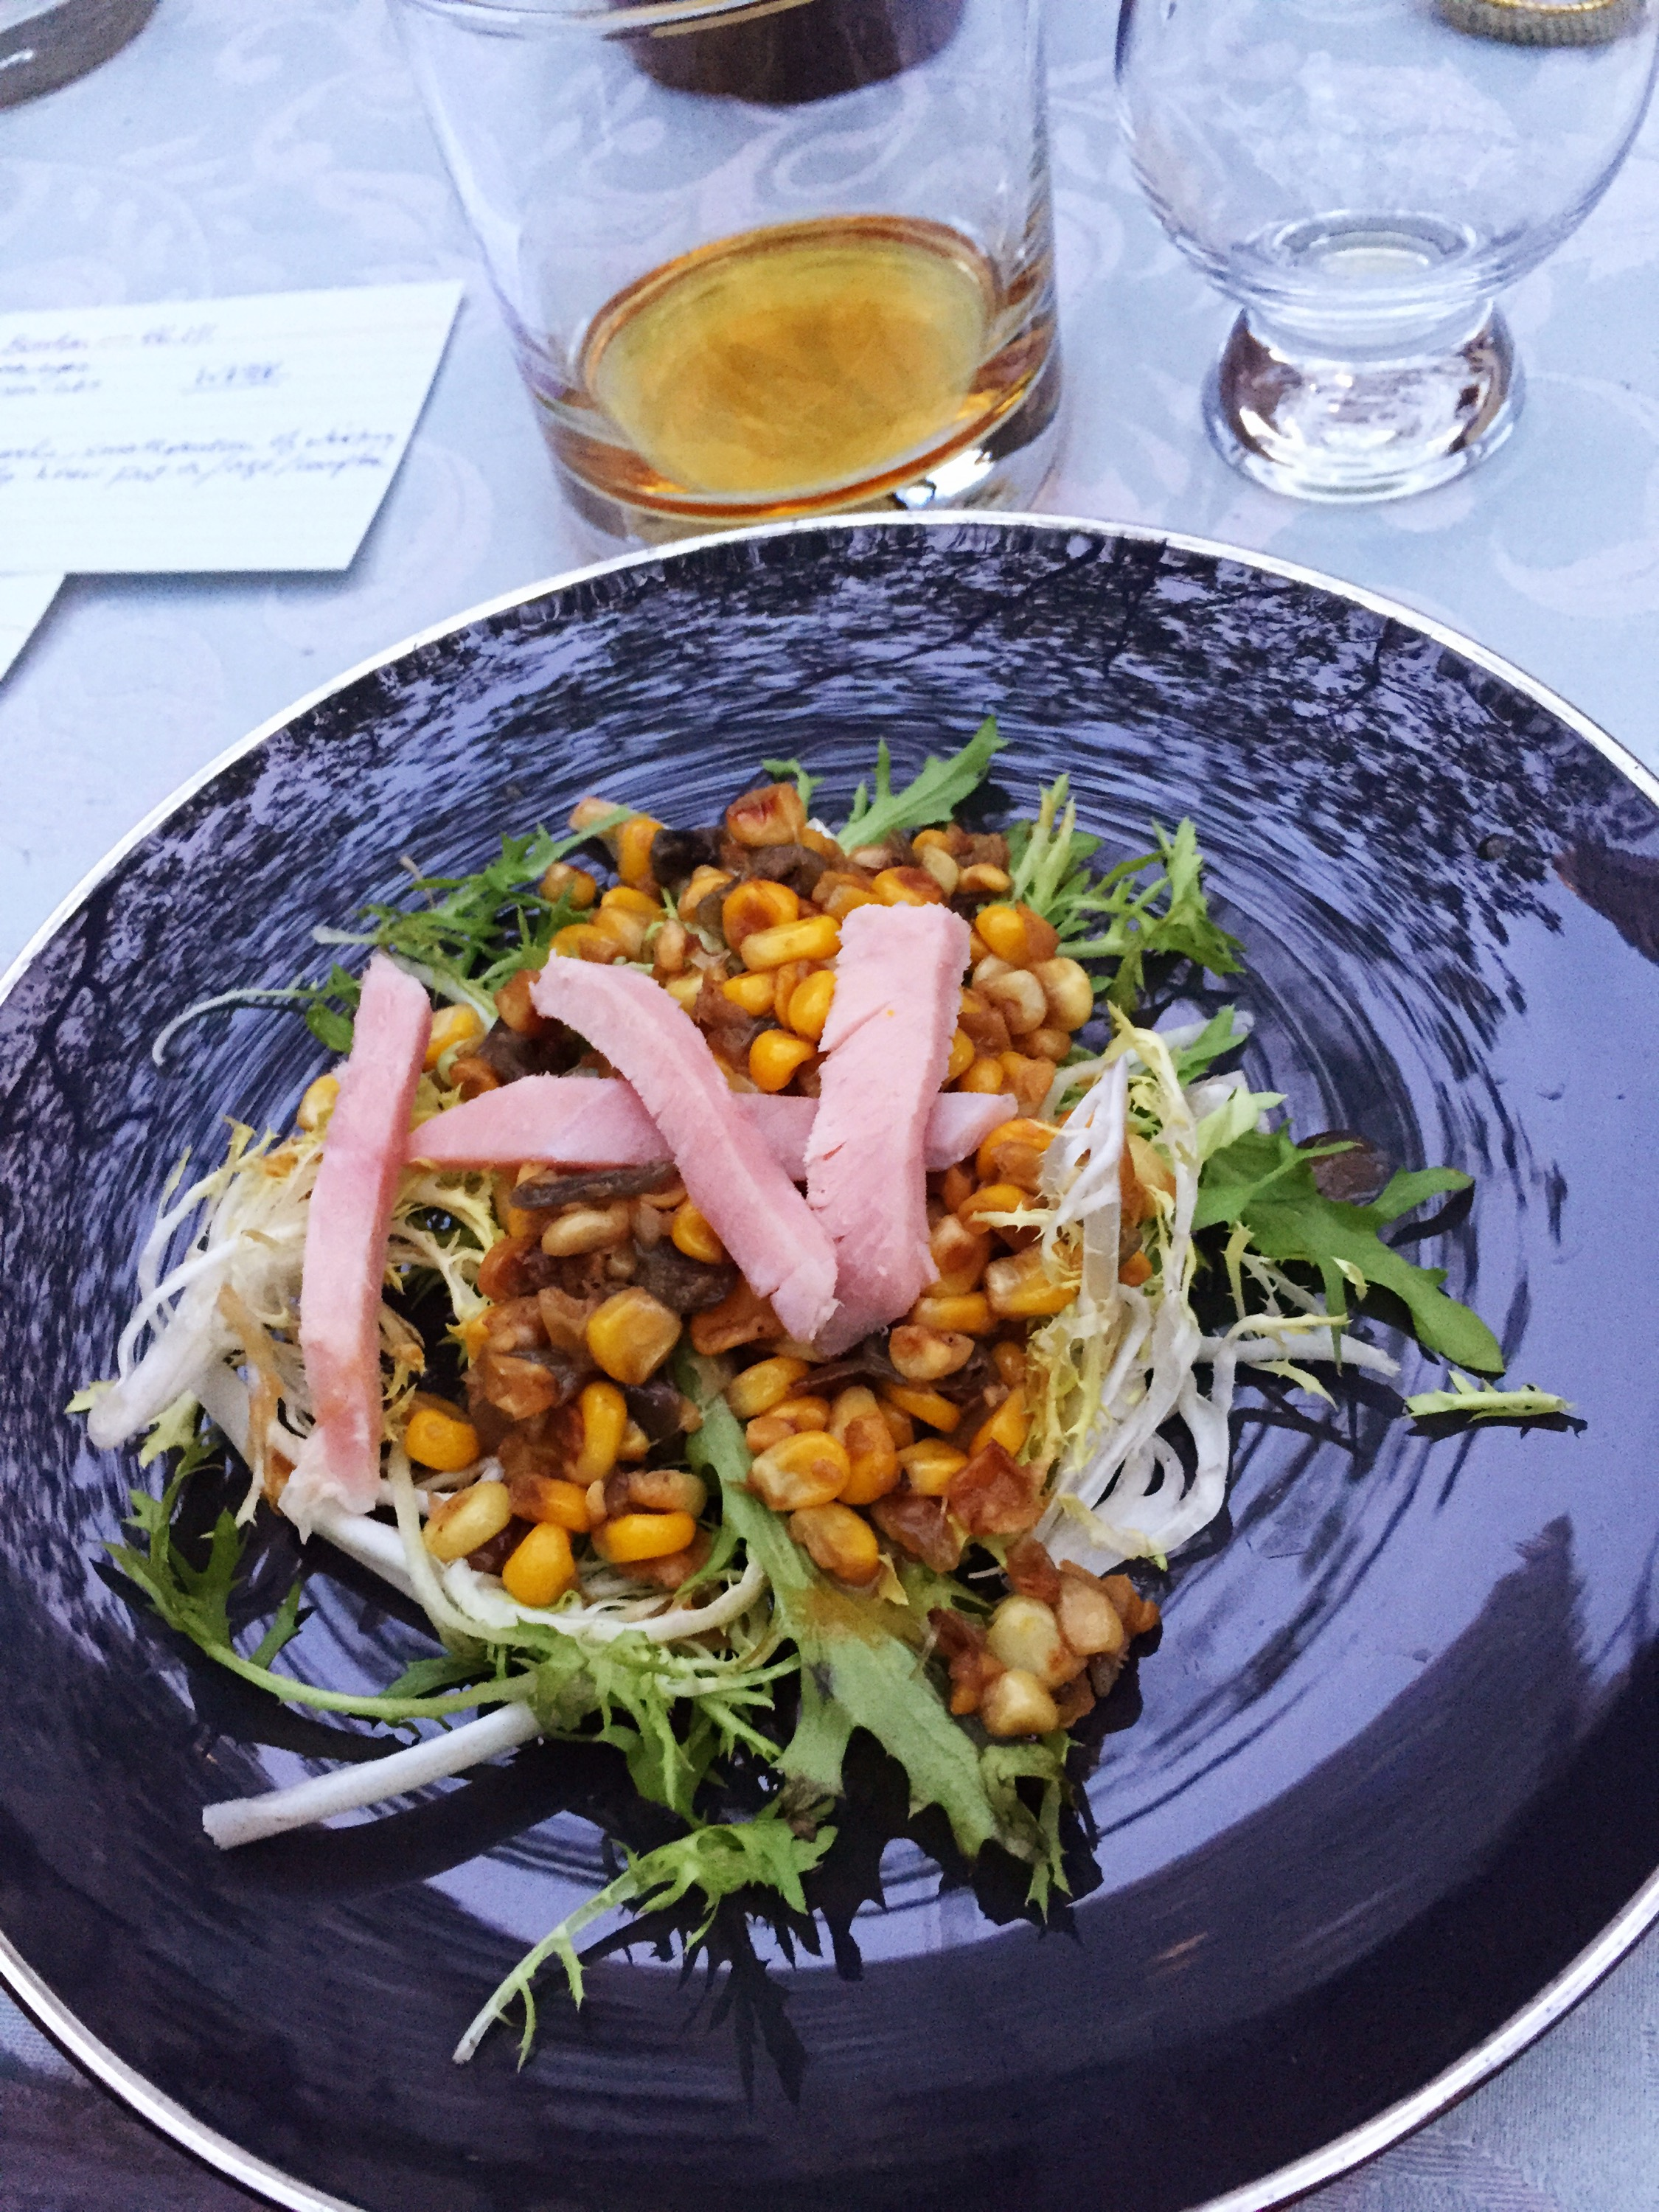 Hillrock Solera Aged Bourbon with clove-scented country ham, pan-roasted corn and frissee salad with sherry vinaigrette